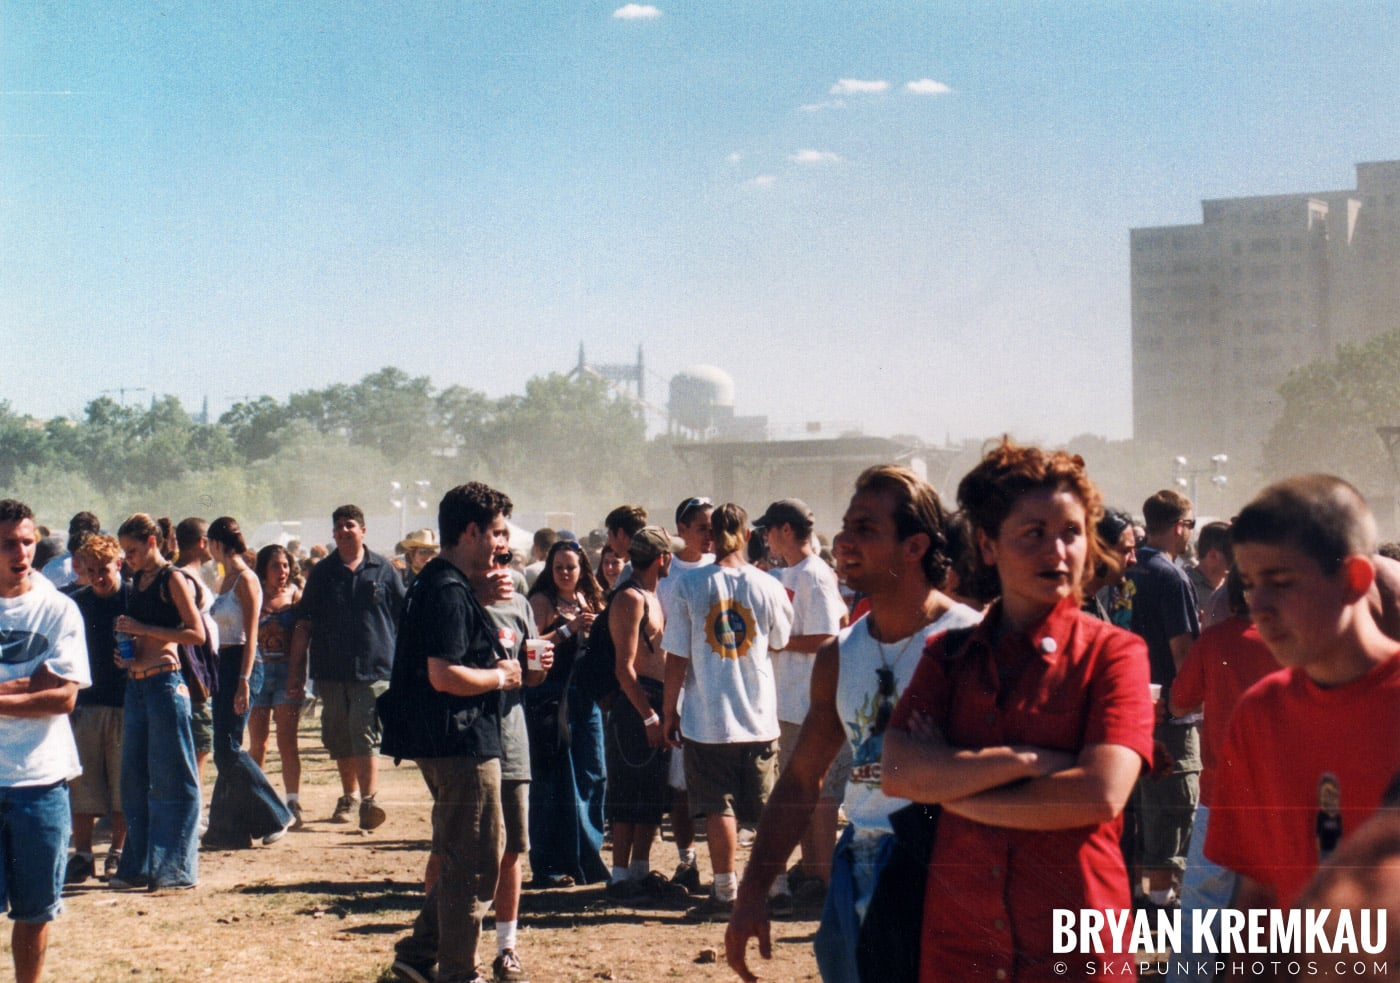 Crowd Shots @ Vans Warped Tour, Randall's Island, NYC - 8.1.98 (4)